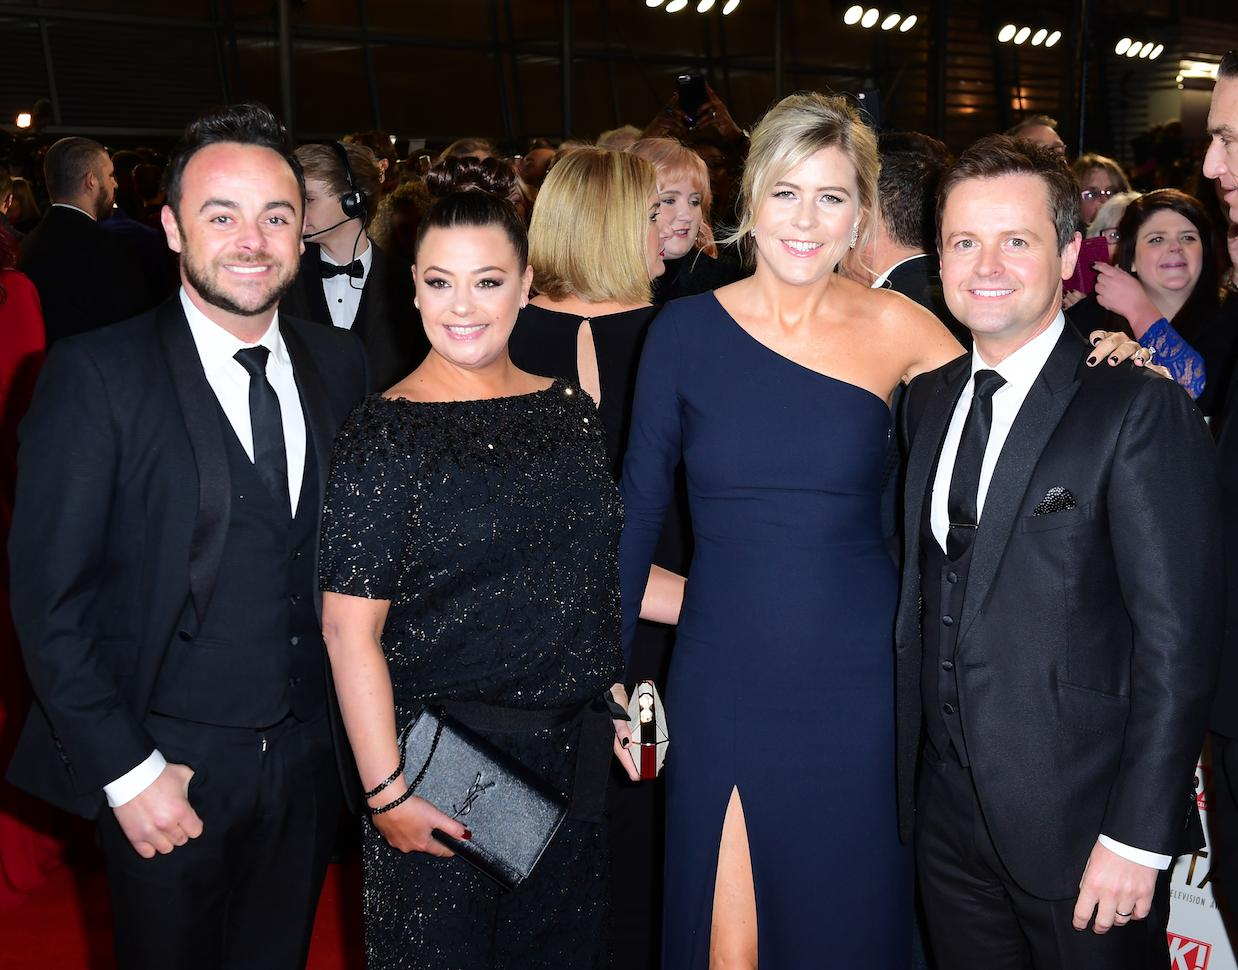 Ant McPartlin, Lisa Armstrong, Ali Astall and Decl